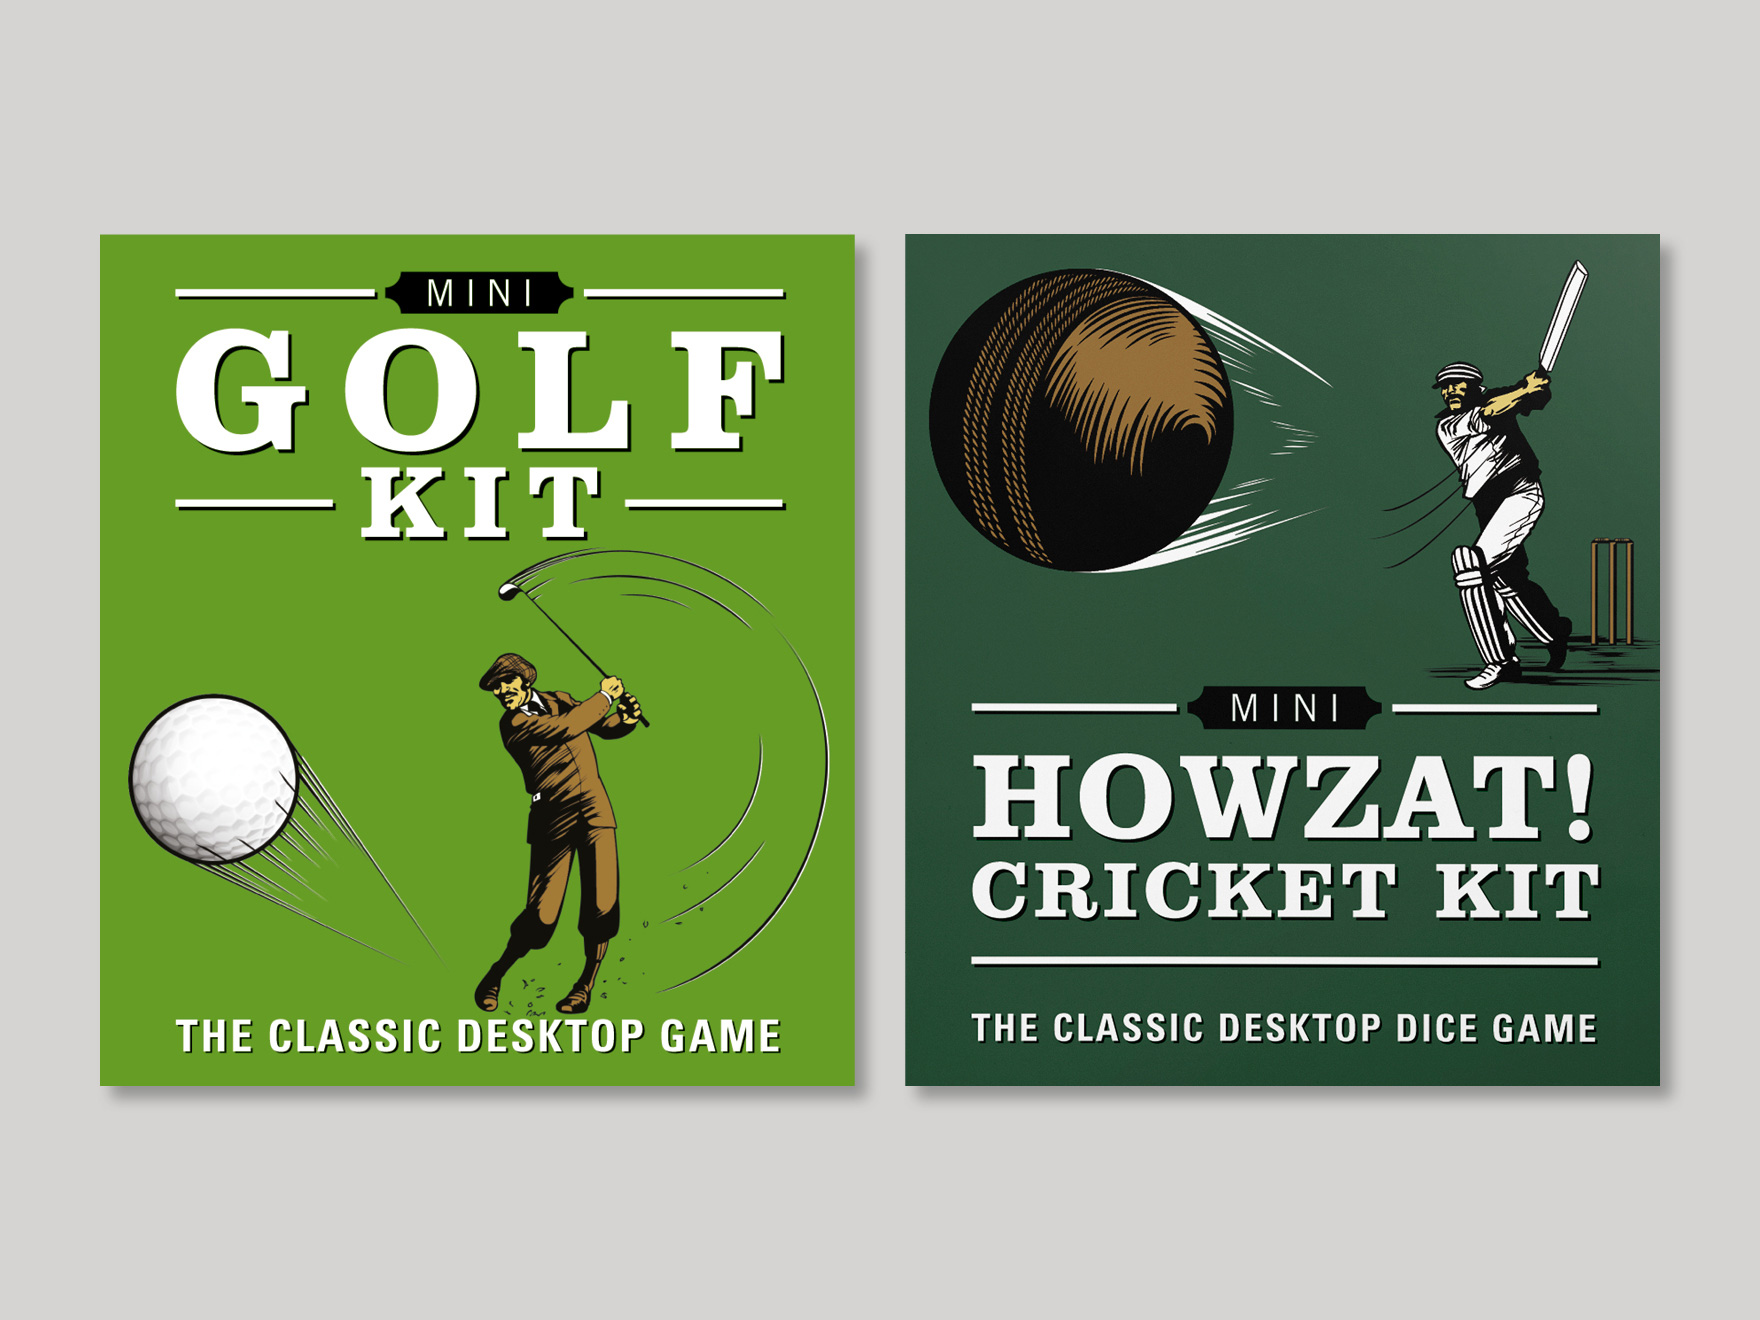 The front cover of the Mini Golf Kit and the Mini Howzat Cricket Kit pocket games. The picture links to a page showing further examples of the mini kits designed by freelance graphic designer Roland Codd.